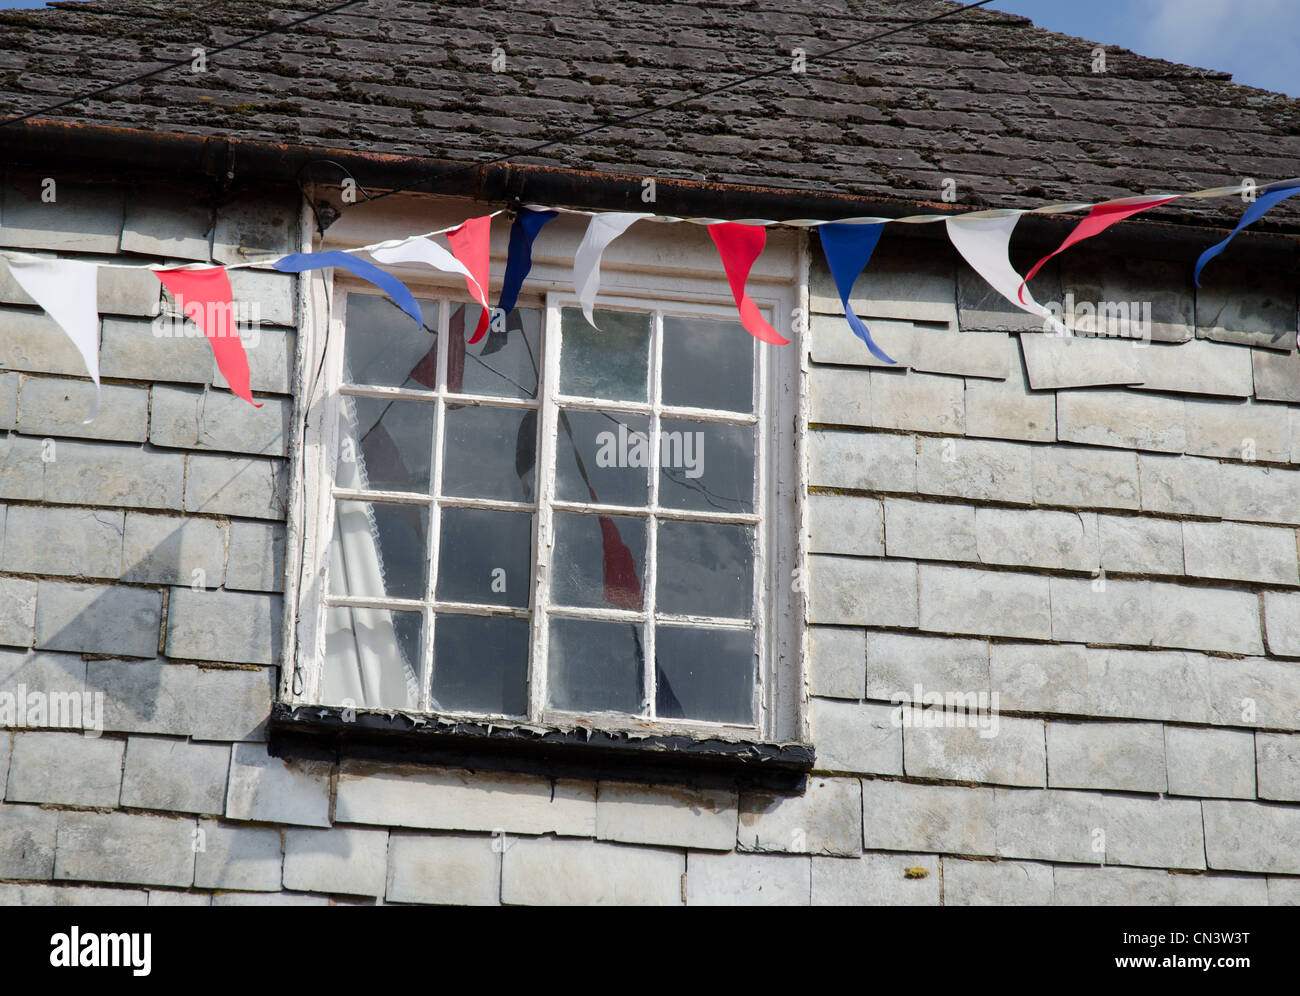 Blue, white and red flags or bunting attached to an old building royal wedding celebration jubilee queen street - Stock Image